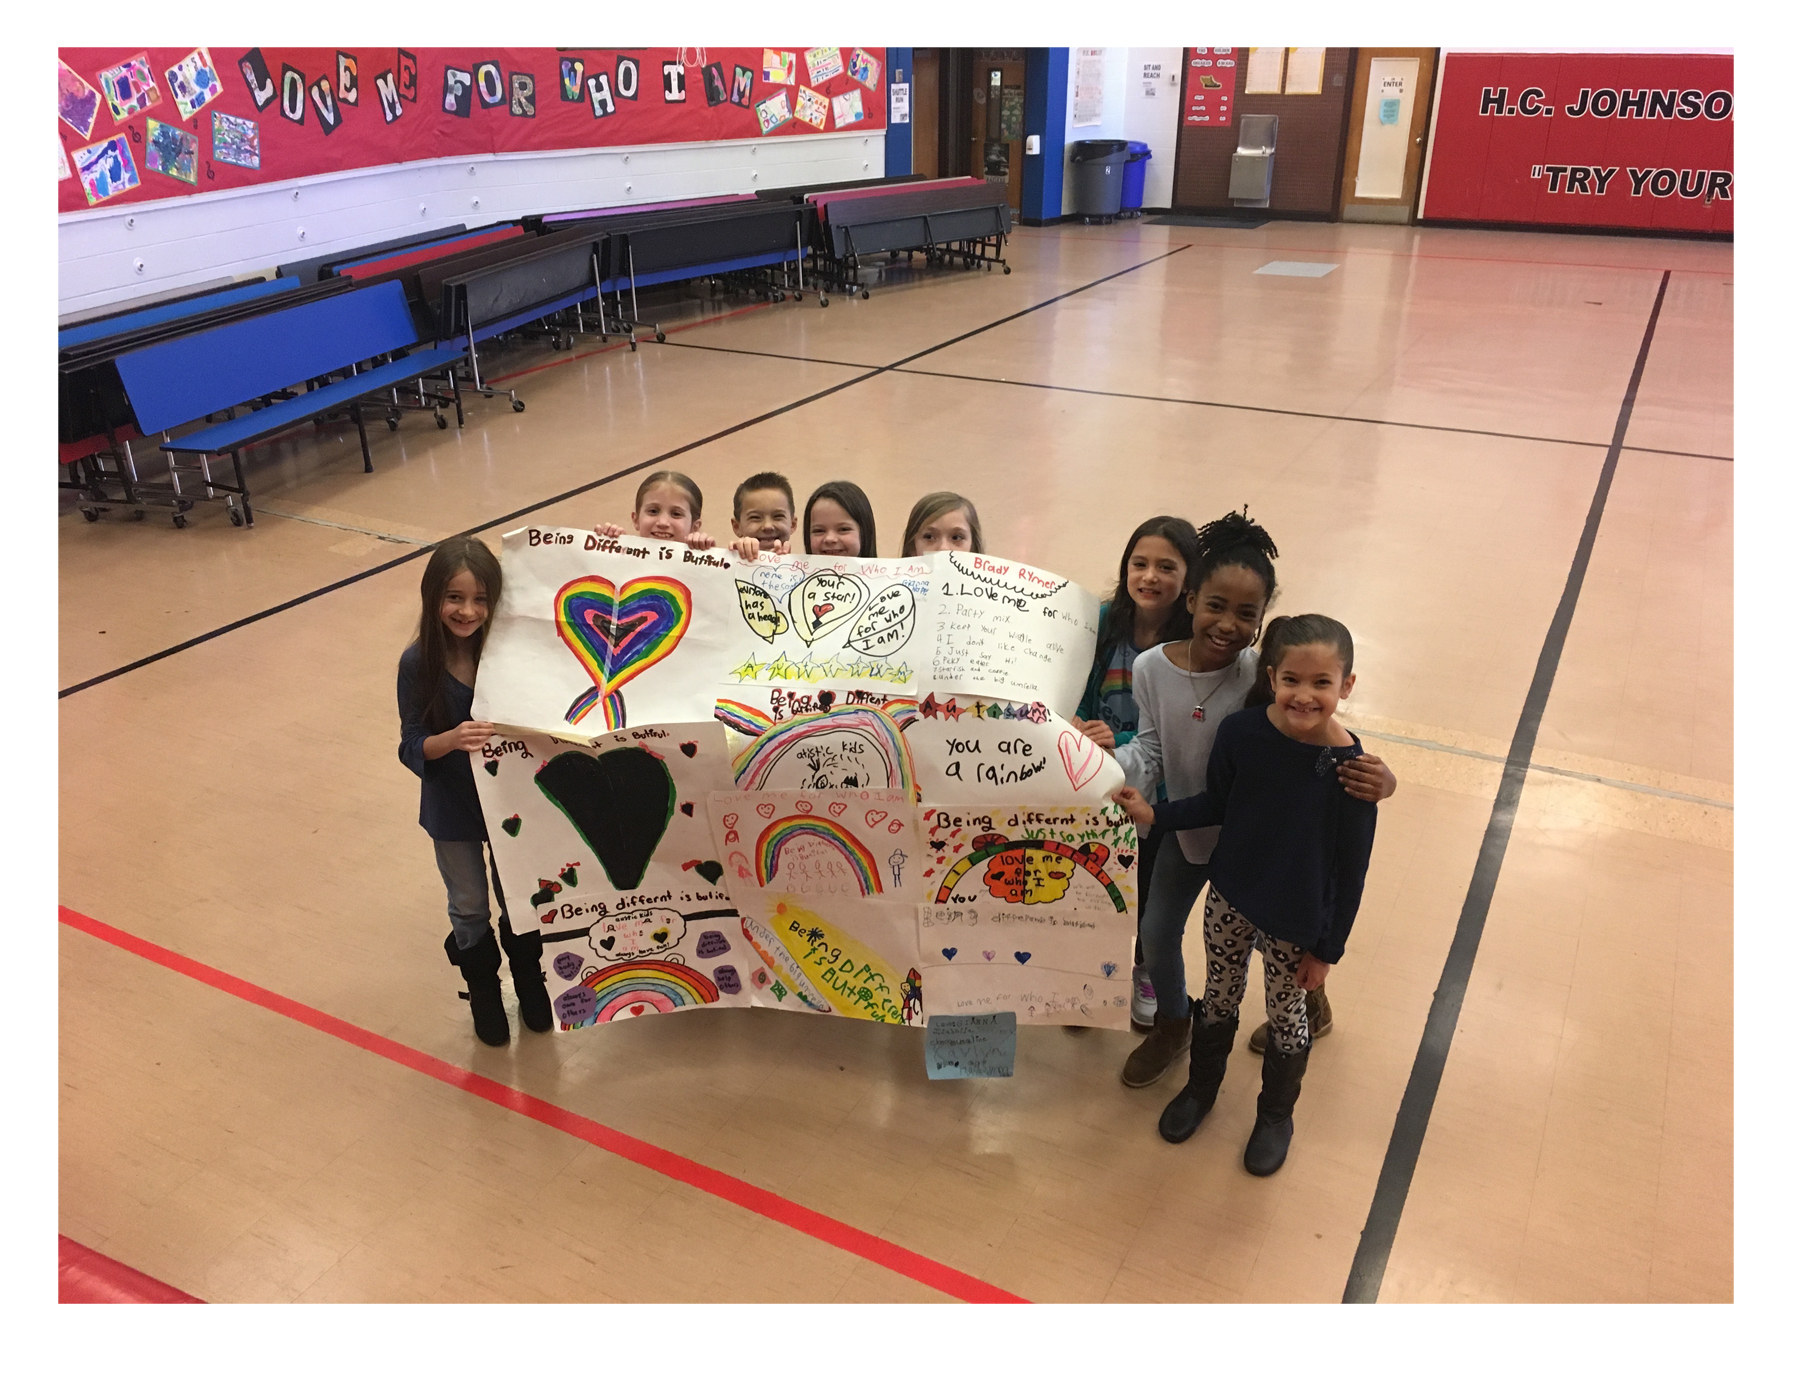 """H.C. Johnson Elementary School kids ready for our """"Love Me For Who I Am"""" concert!"""